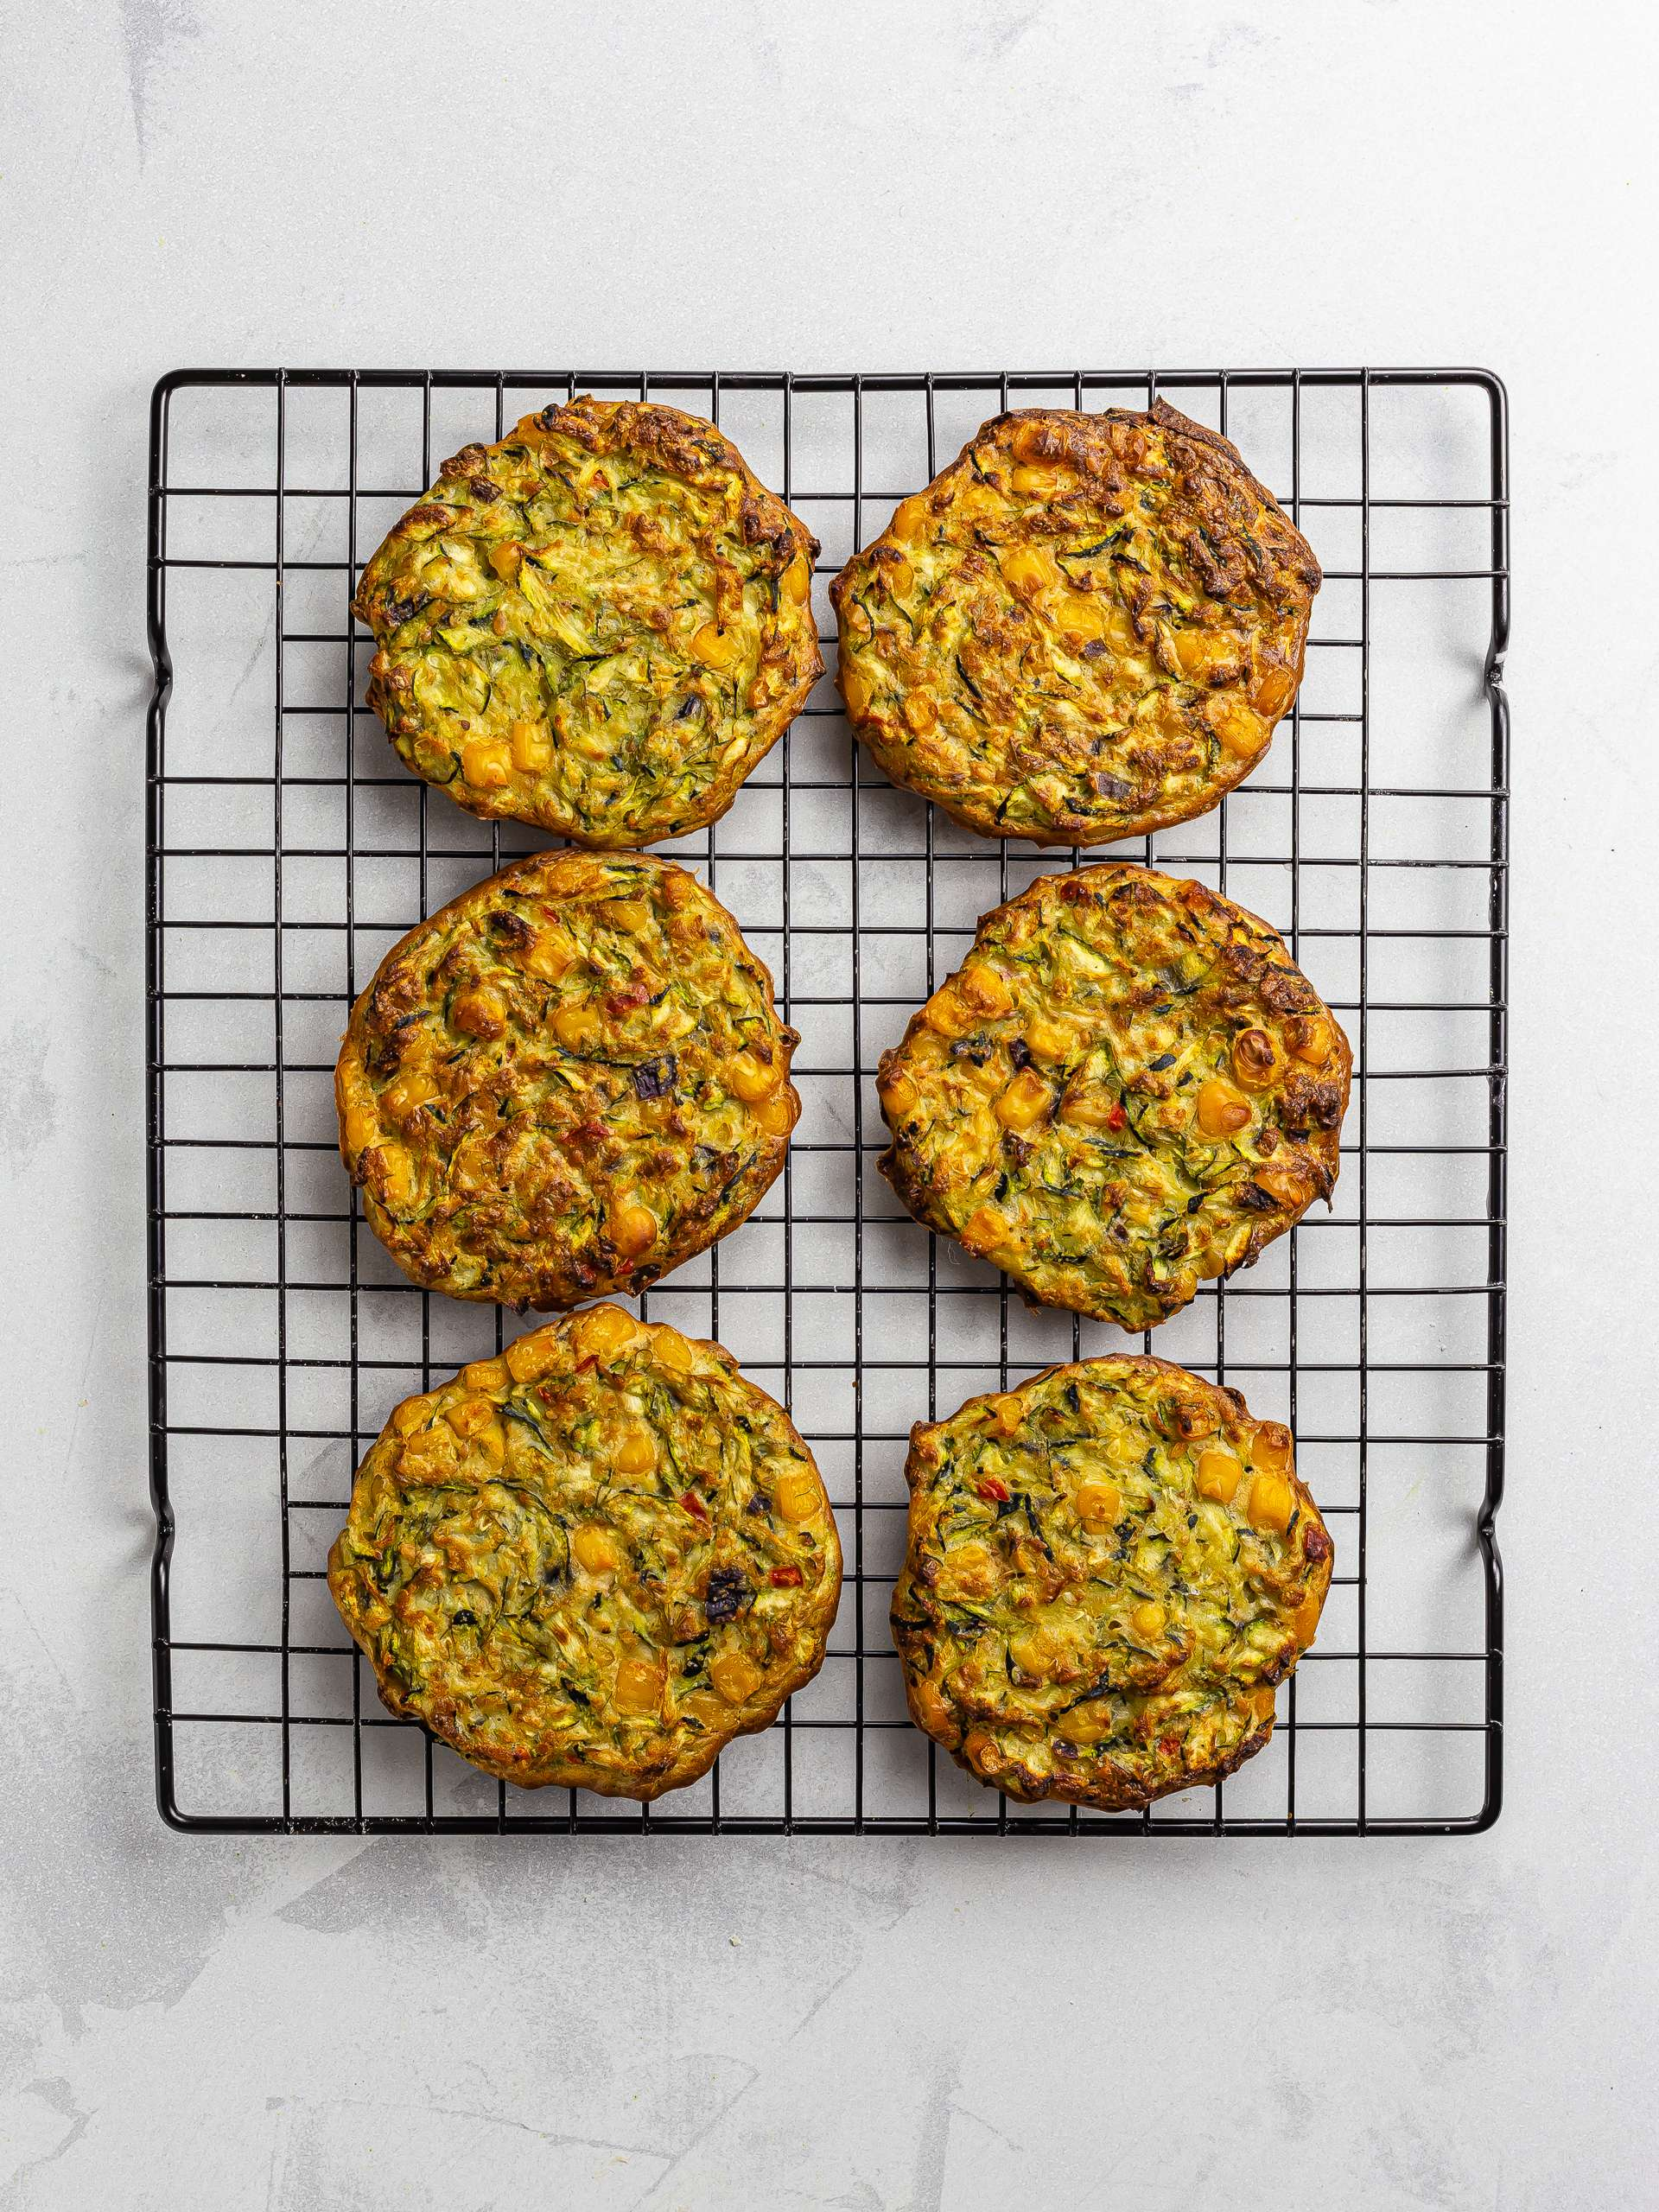 oven-baked zucchini corn fritters